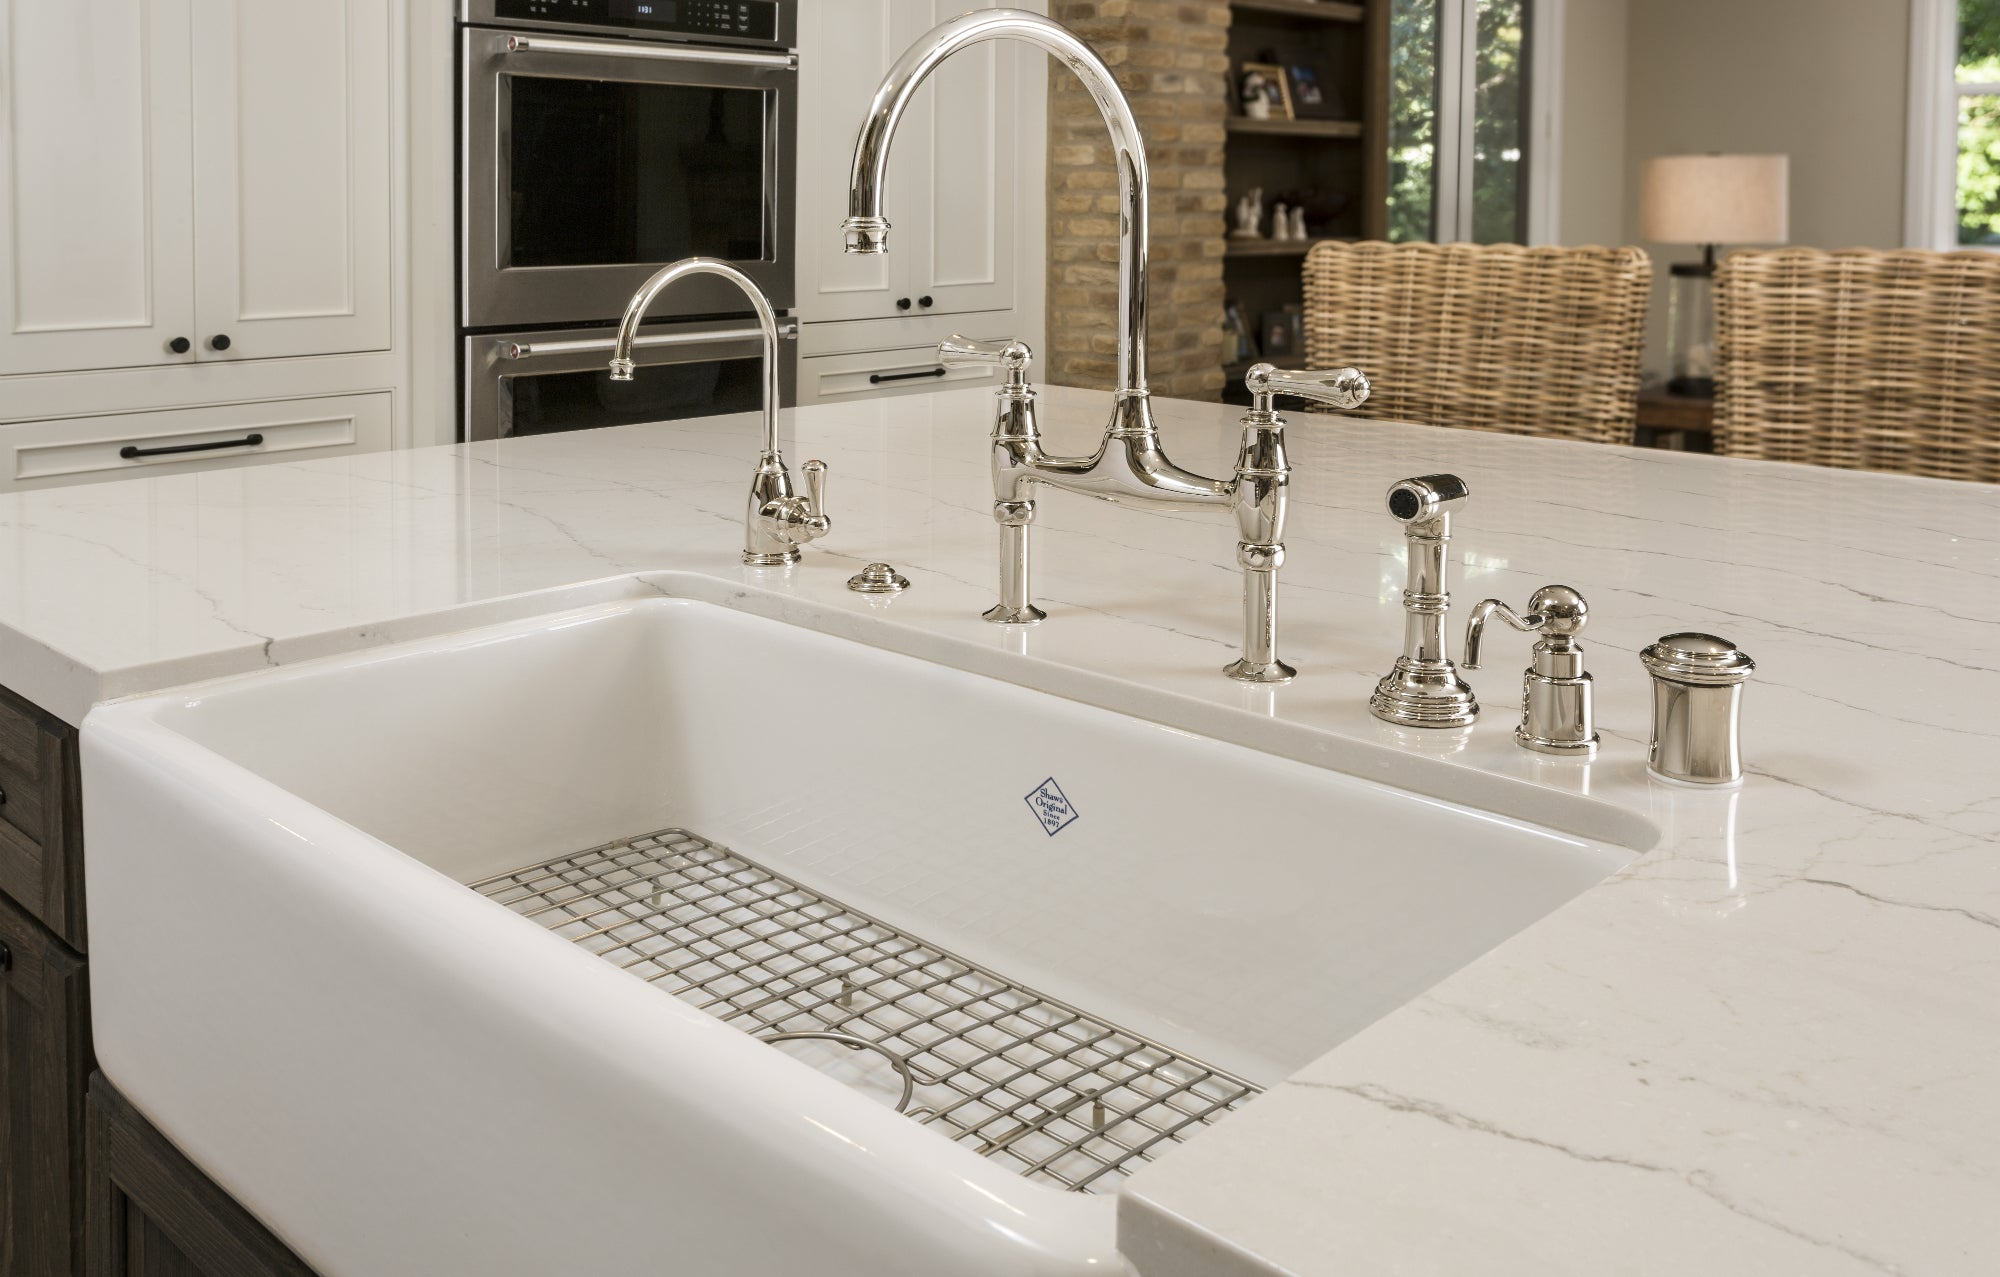 How To Install A Farmhouse Sink 6 Easy Steps Updated 2020 Annie Oak